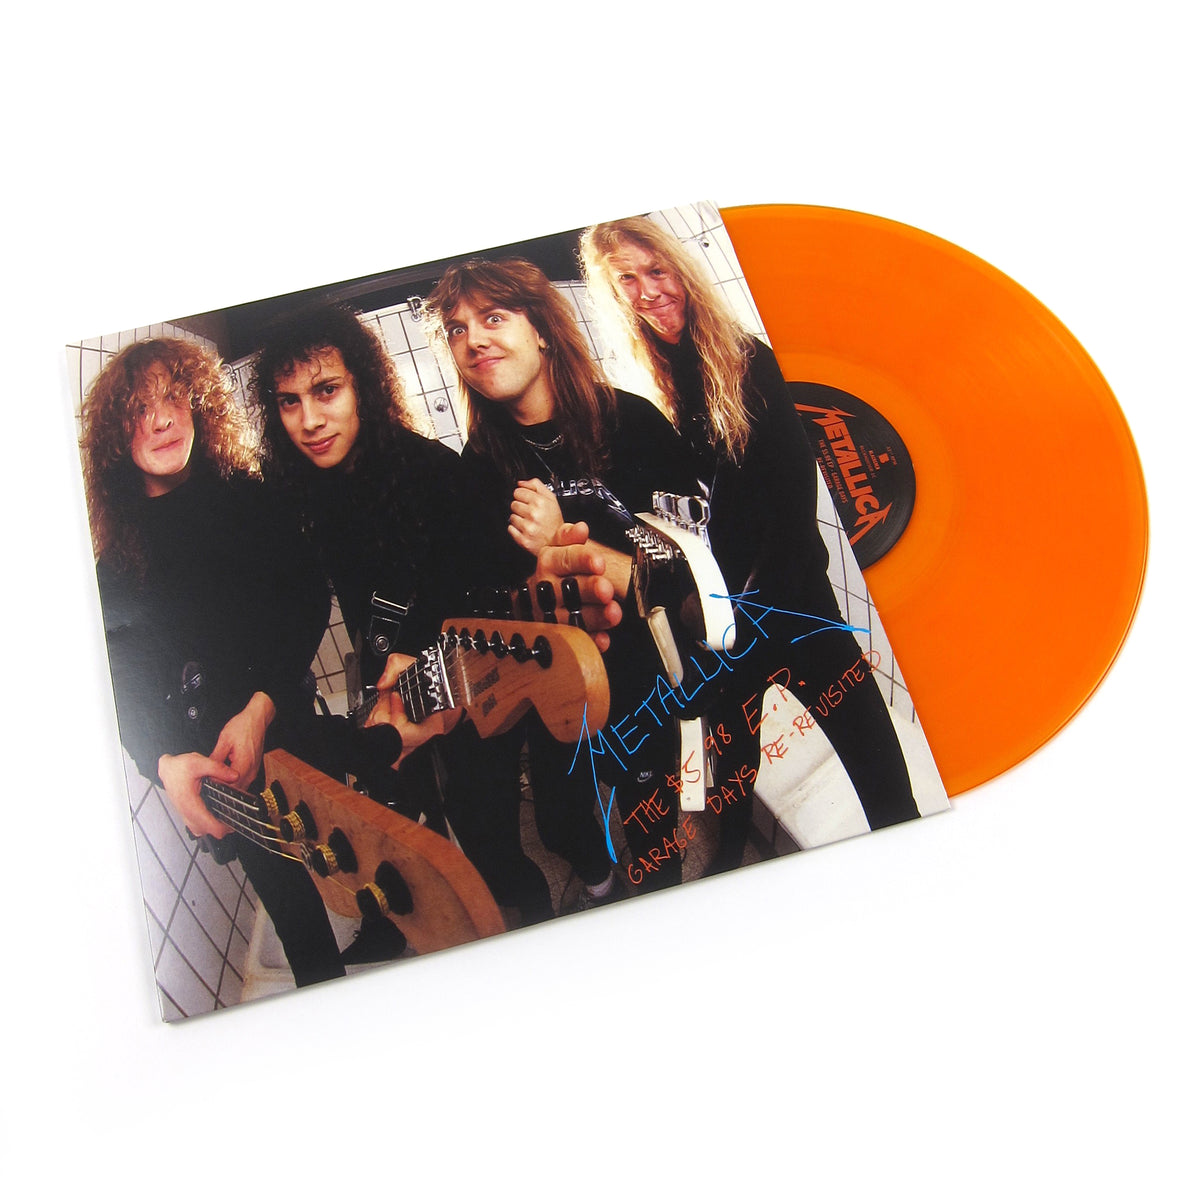 Metallica: The $5.98 EP - Garage Days Re-Revisited (180g, Indie Exclusive Colored Vinyl) Vinyl LP